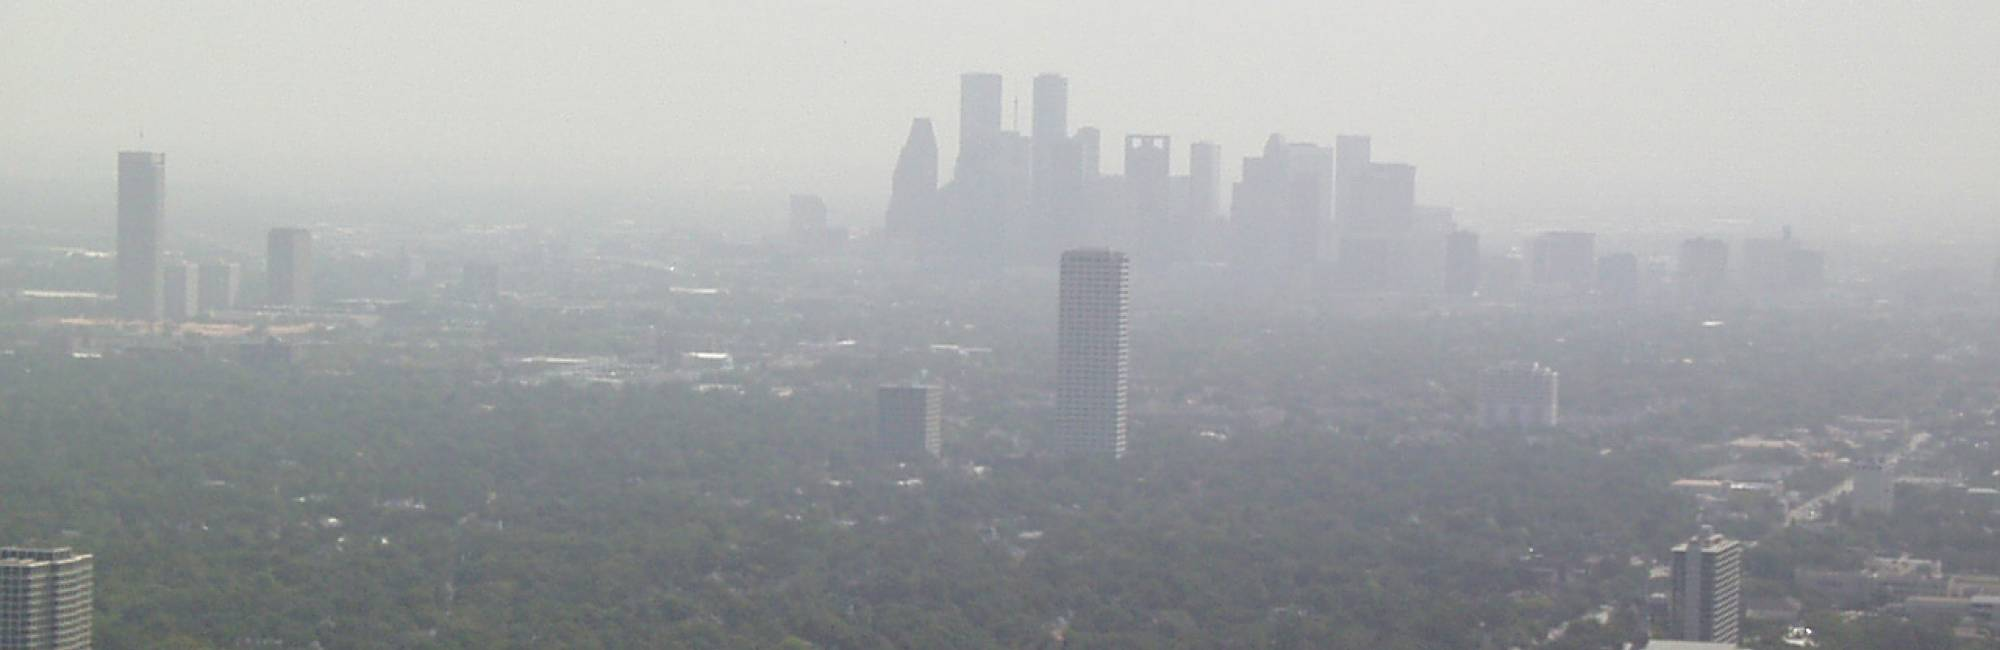 Photo of polluted downtown Houston skyline.